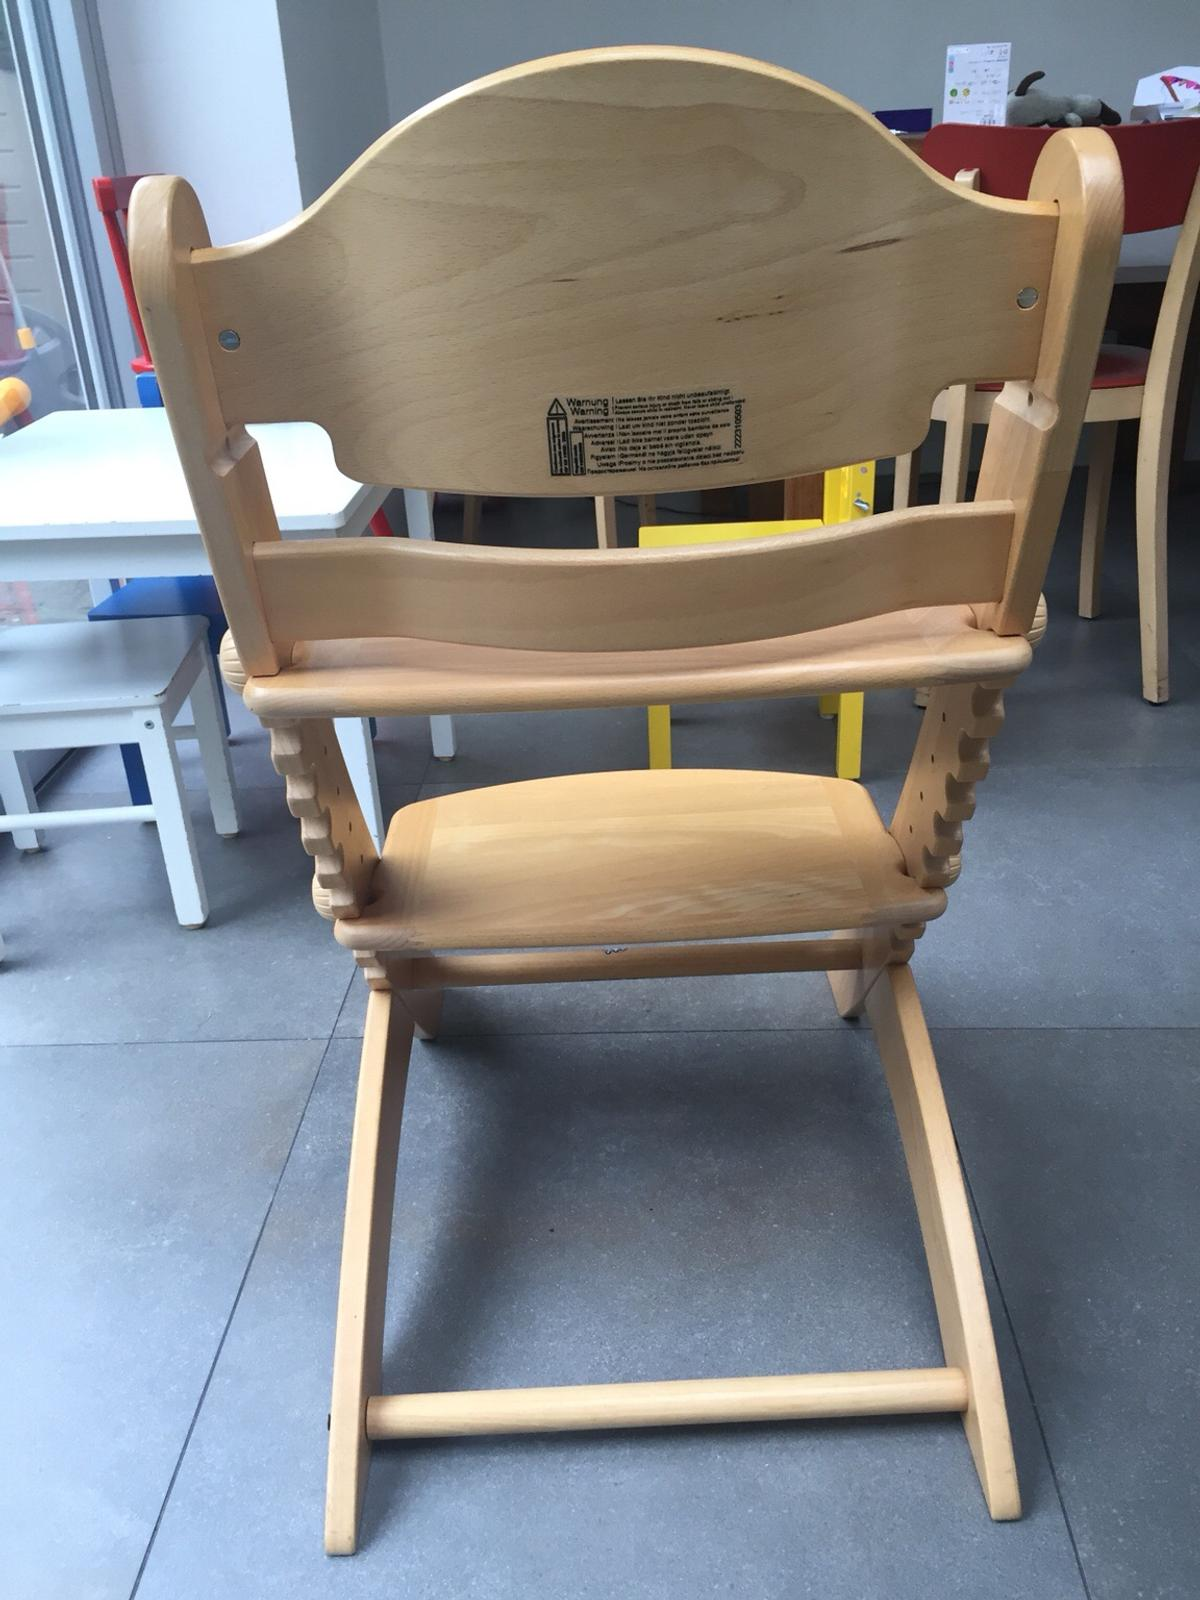 Geuther swing adjustable wooden high chair in SW15